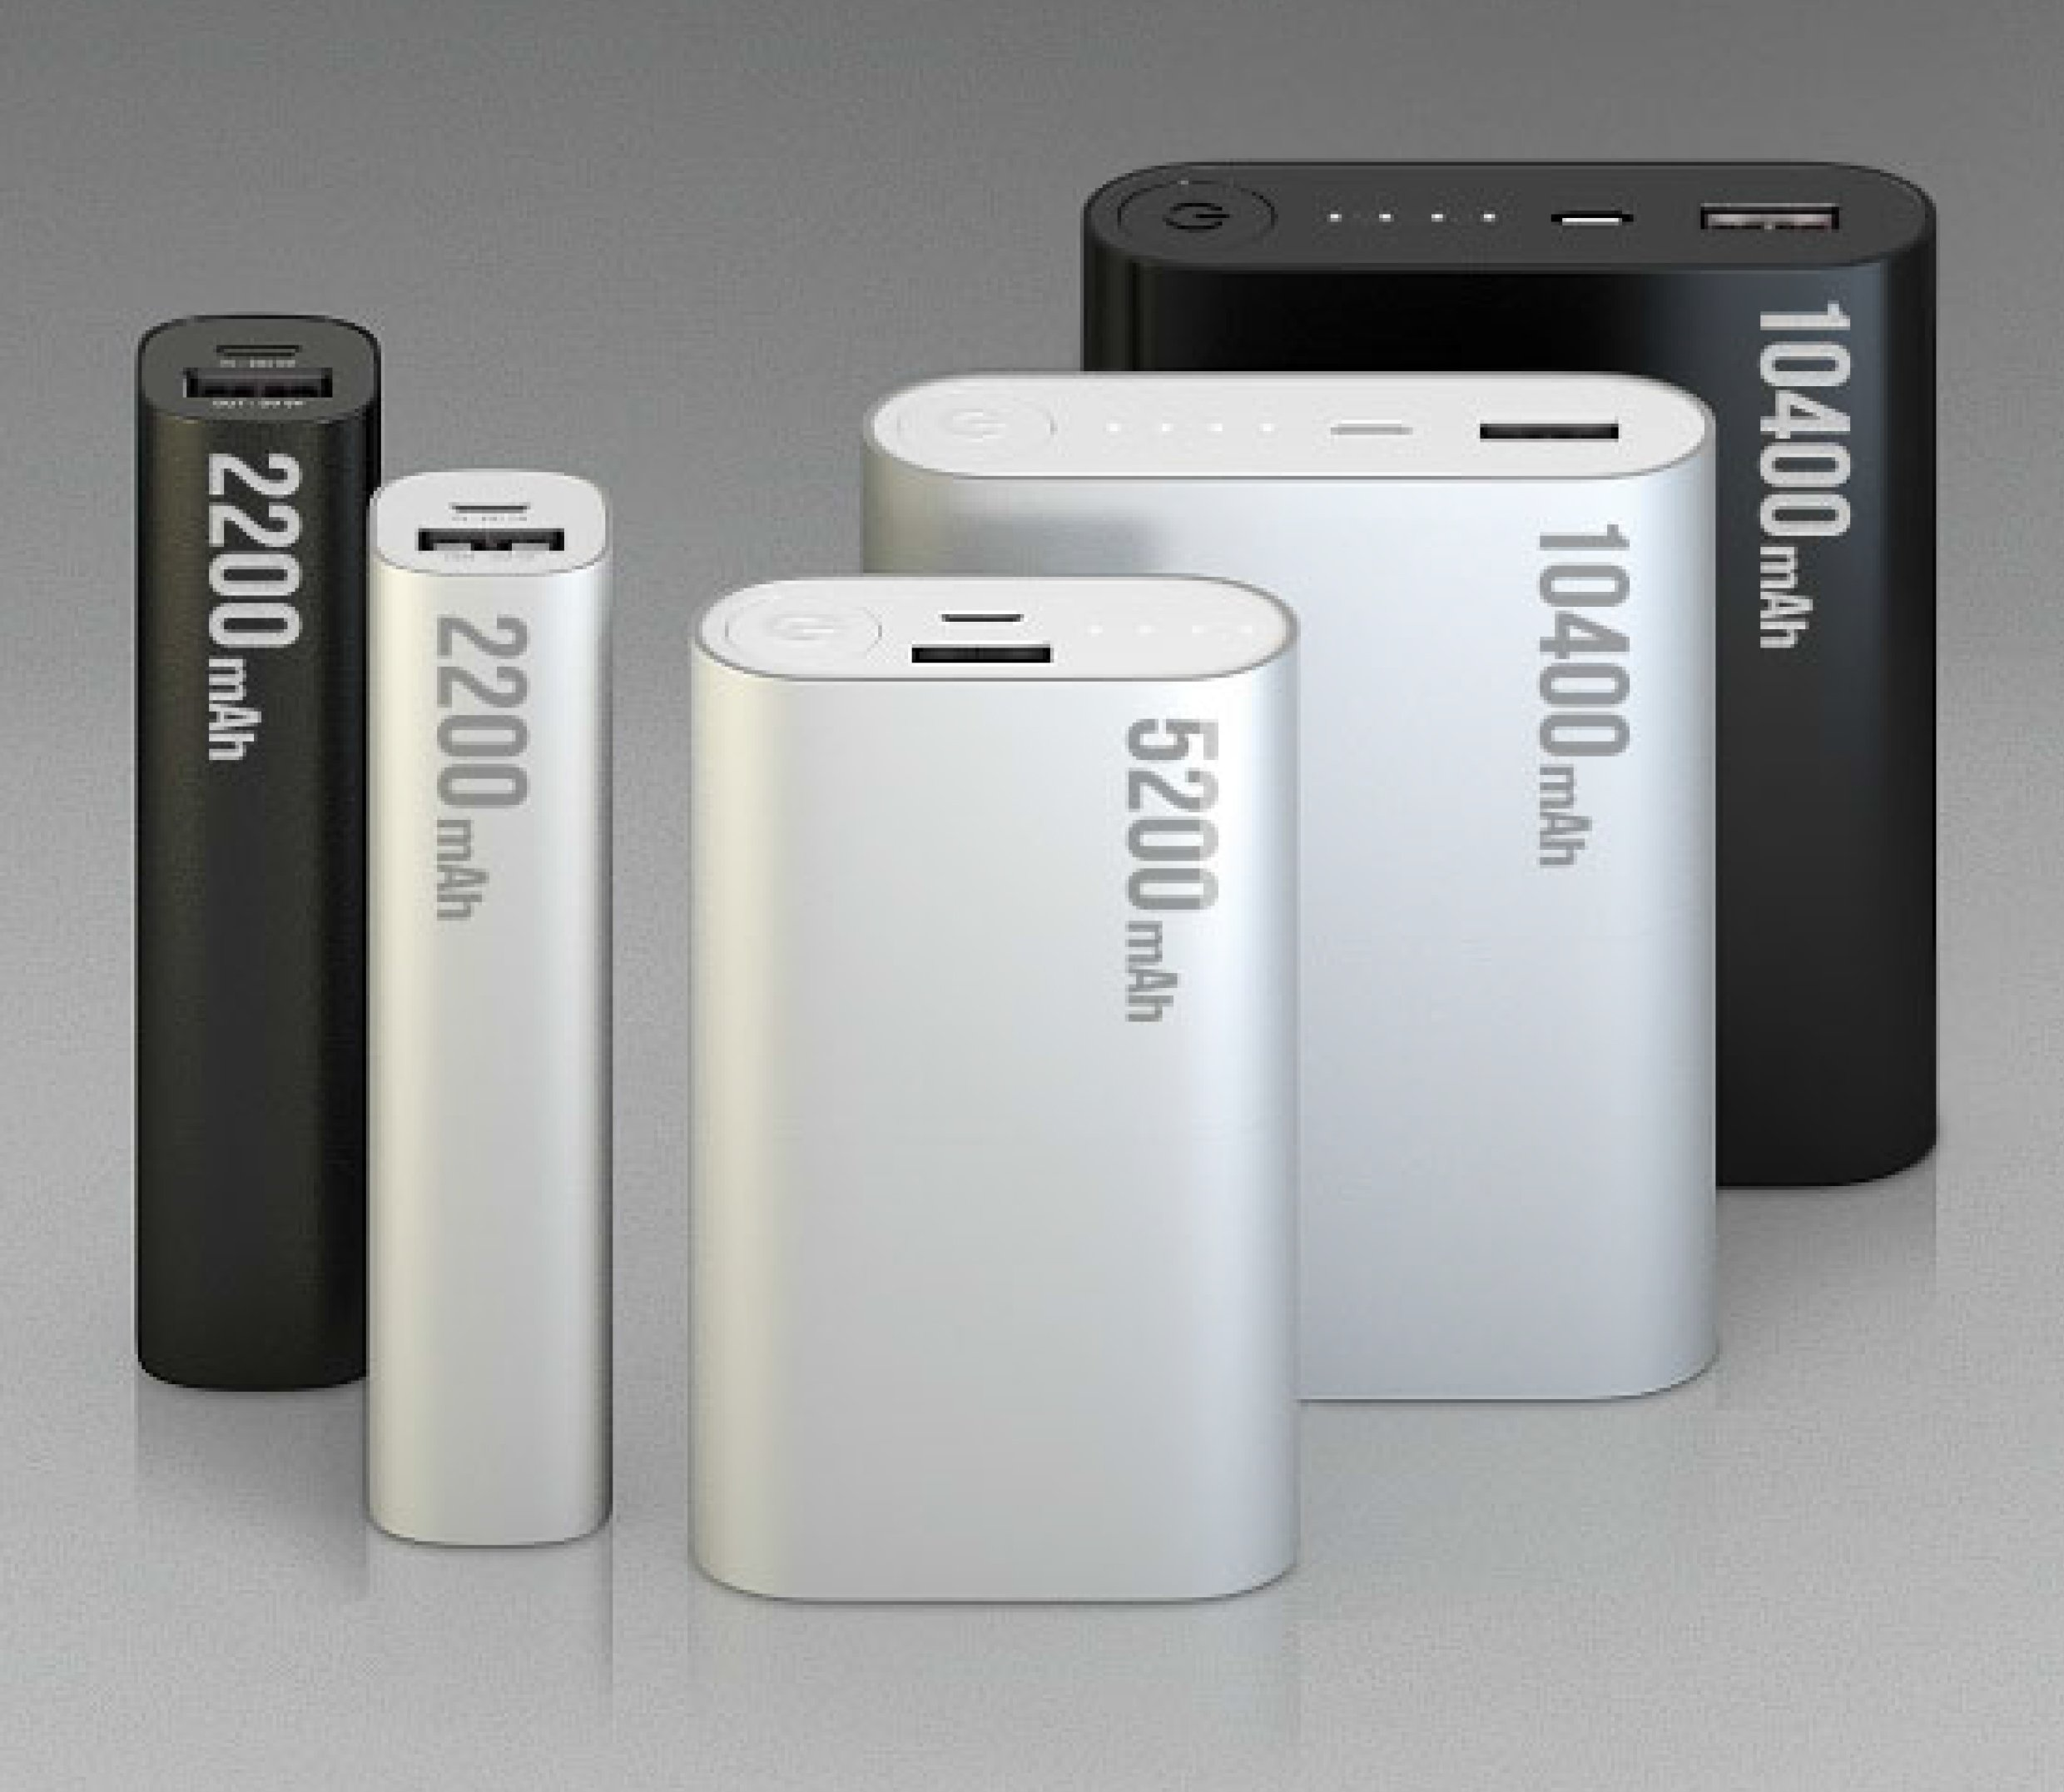 Powerbank ludique